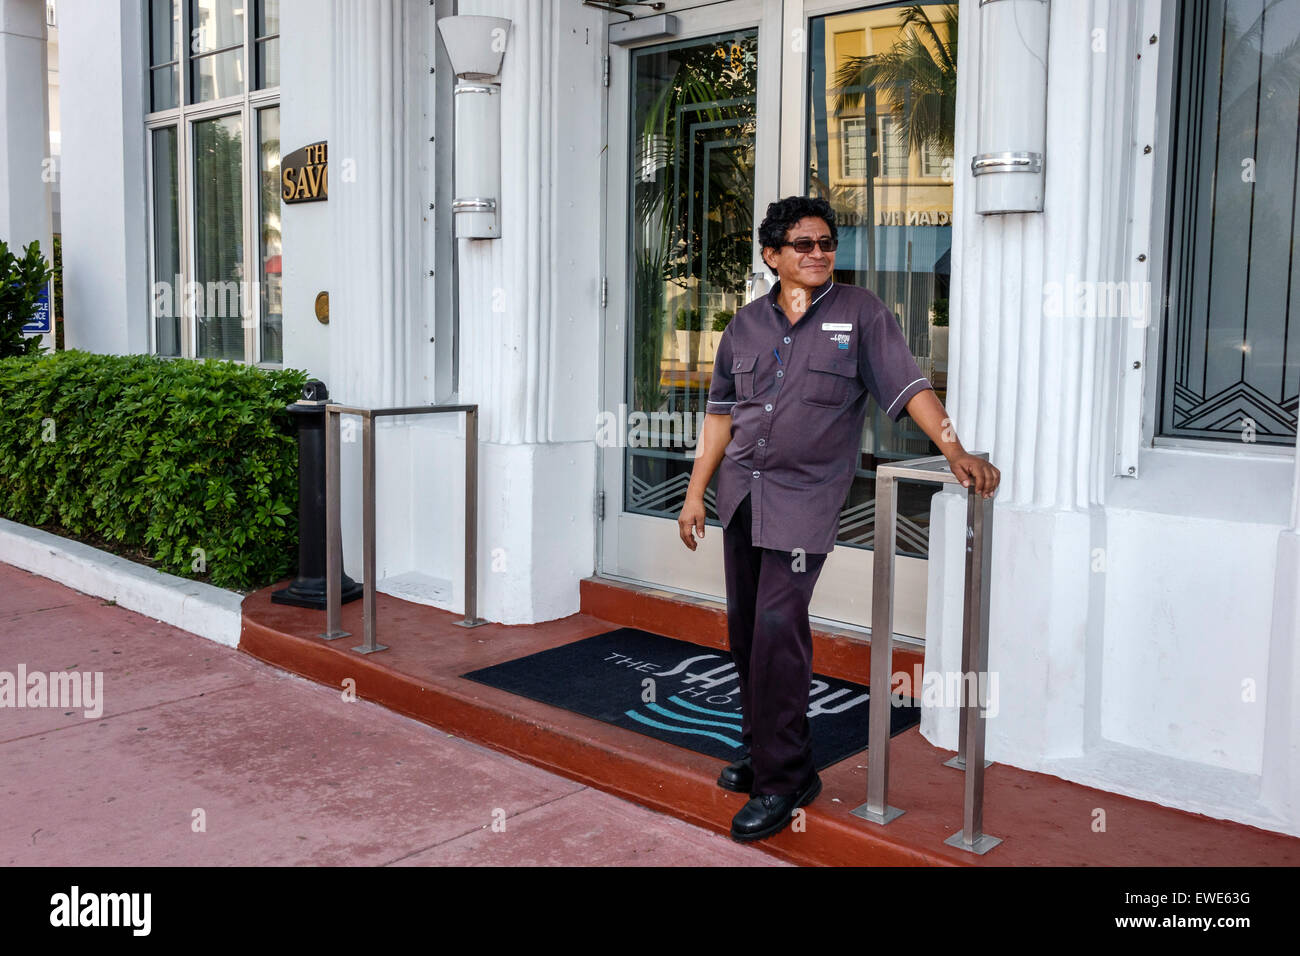 Miami Beach Florida Ocean Drive The Savoy hotel front entrance Hispanic man doorman porter - Stock & Hotel Savoy Doorman Stock Photos u0026 Hotel Savoy Doorman Stock Images ...